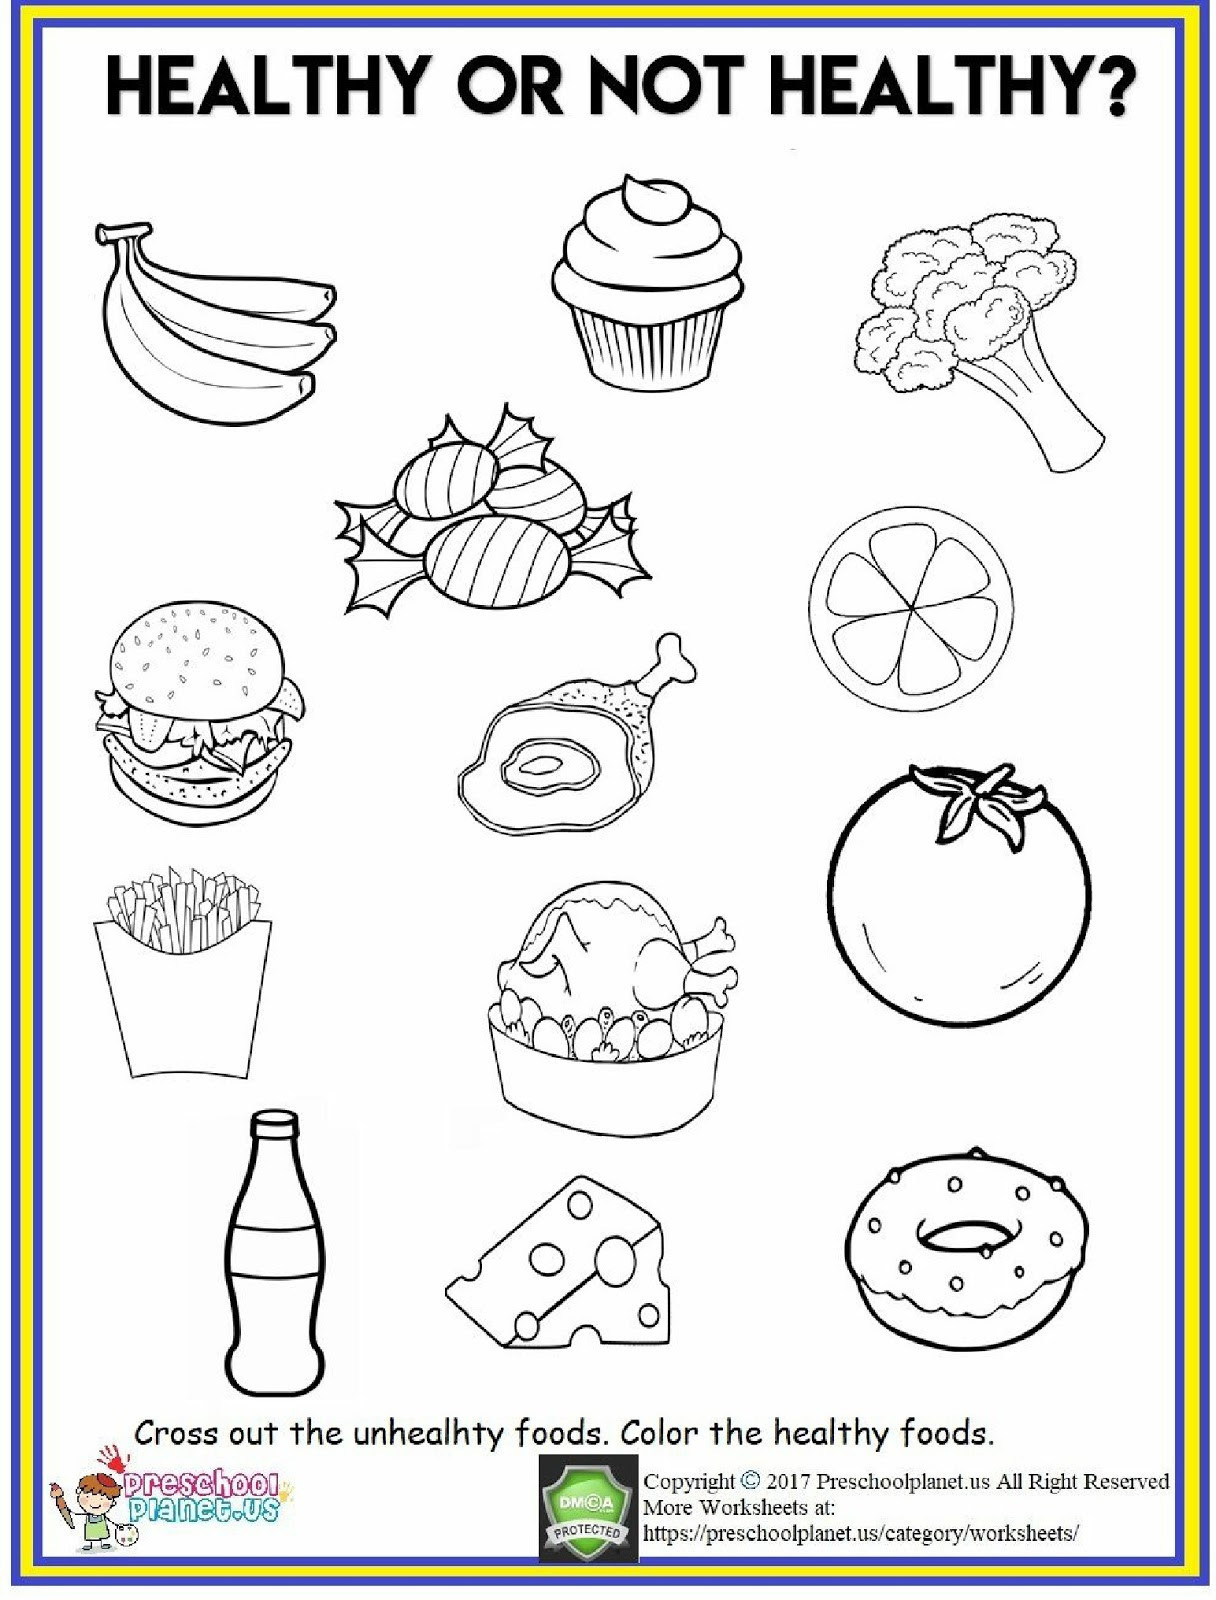 Preschool Fruits and Vegetables Worksheets 4 Food Worksheets Preschool Fruits and Ve Ables